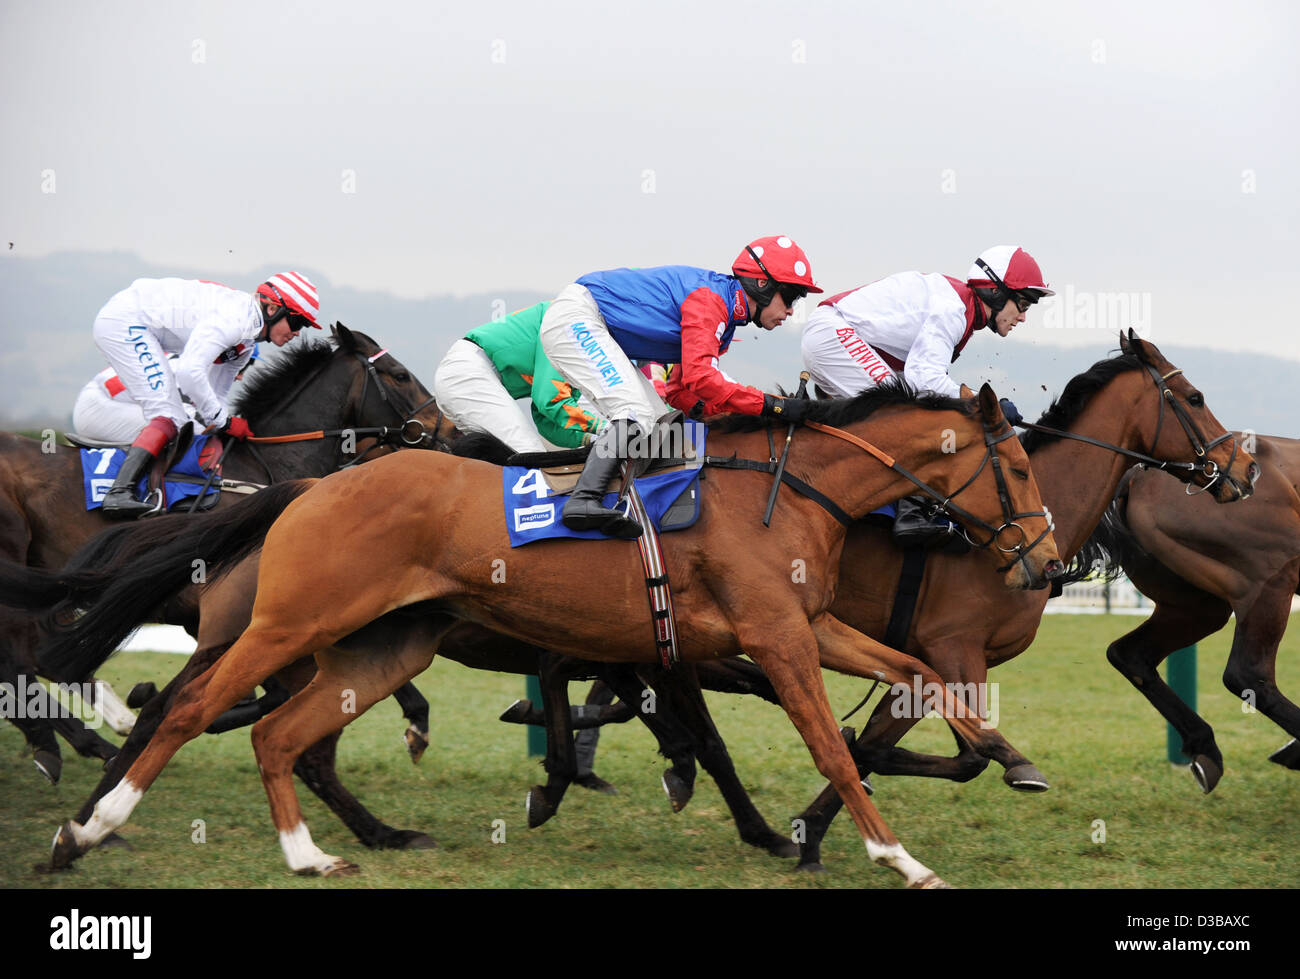 Jockeys ride their horses during The Cheltenham Festival an annual horse racing event in England Stock Photo